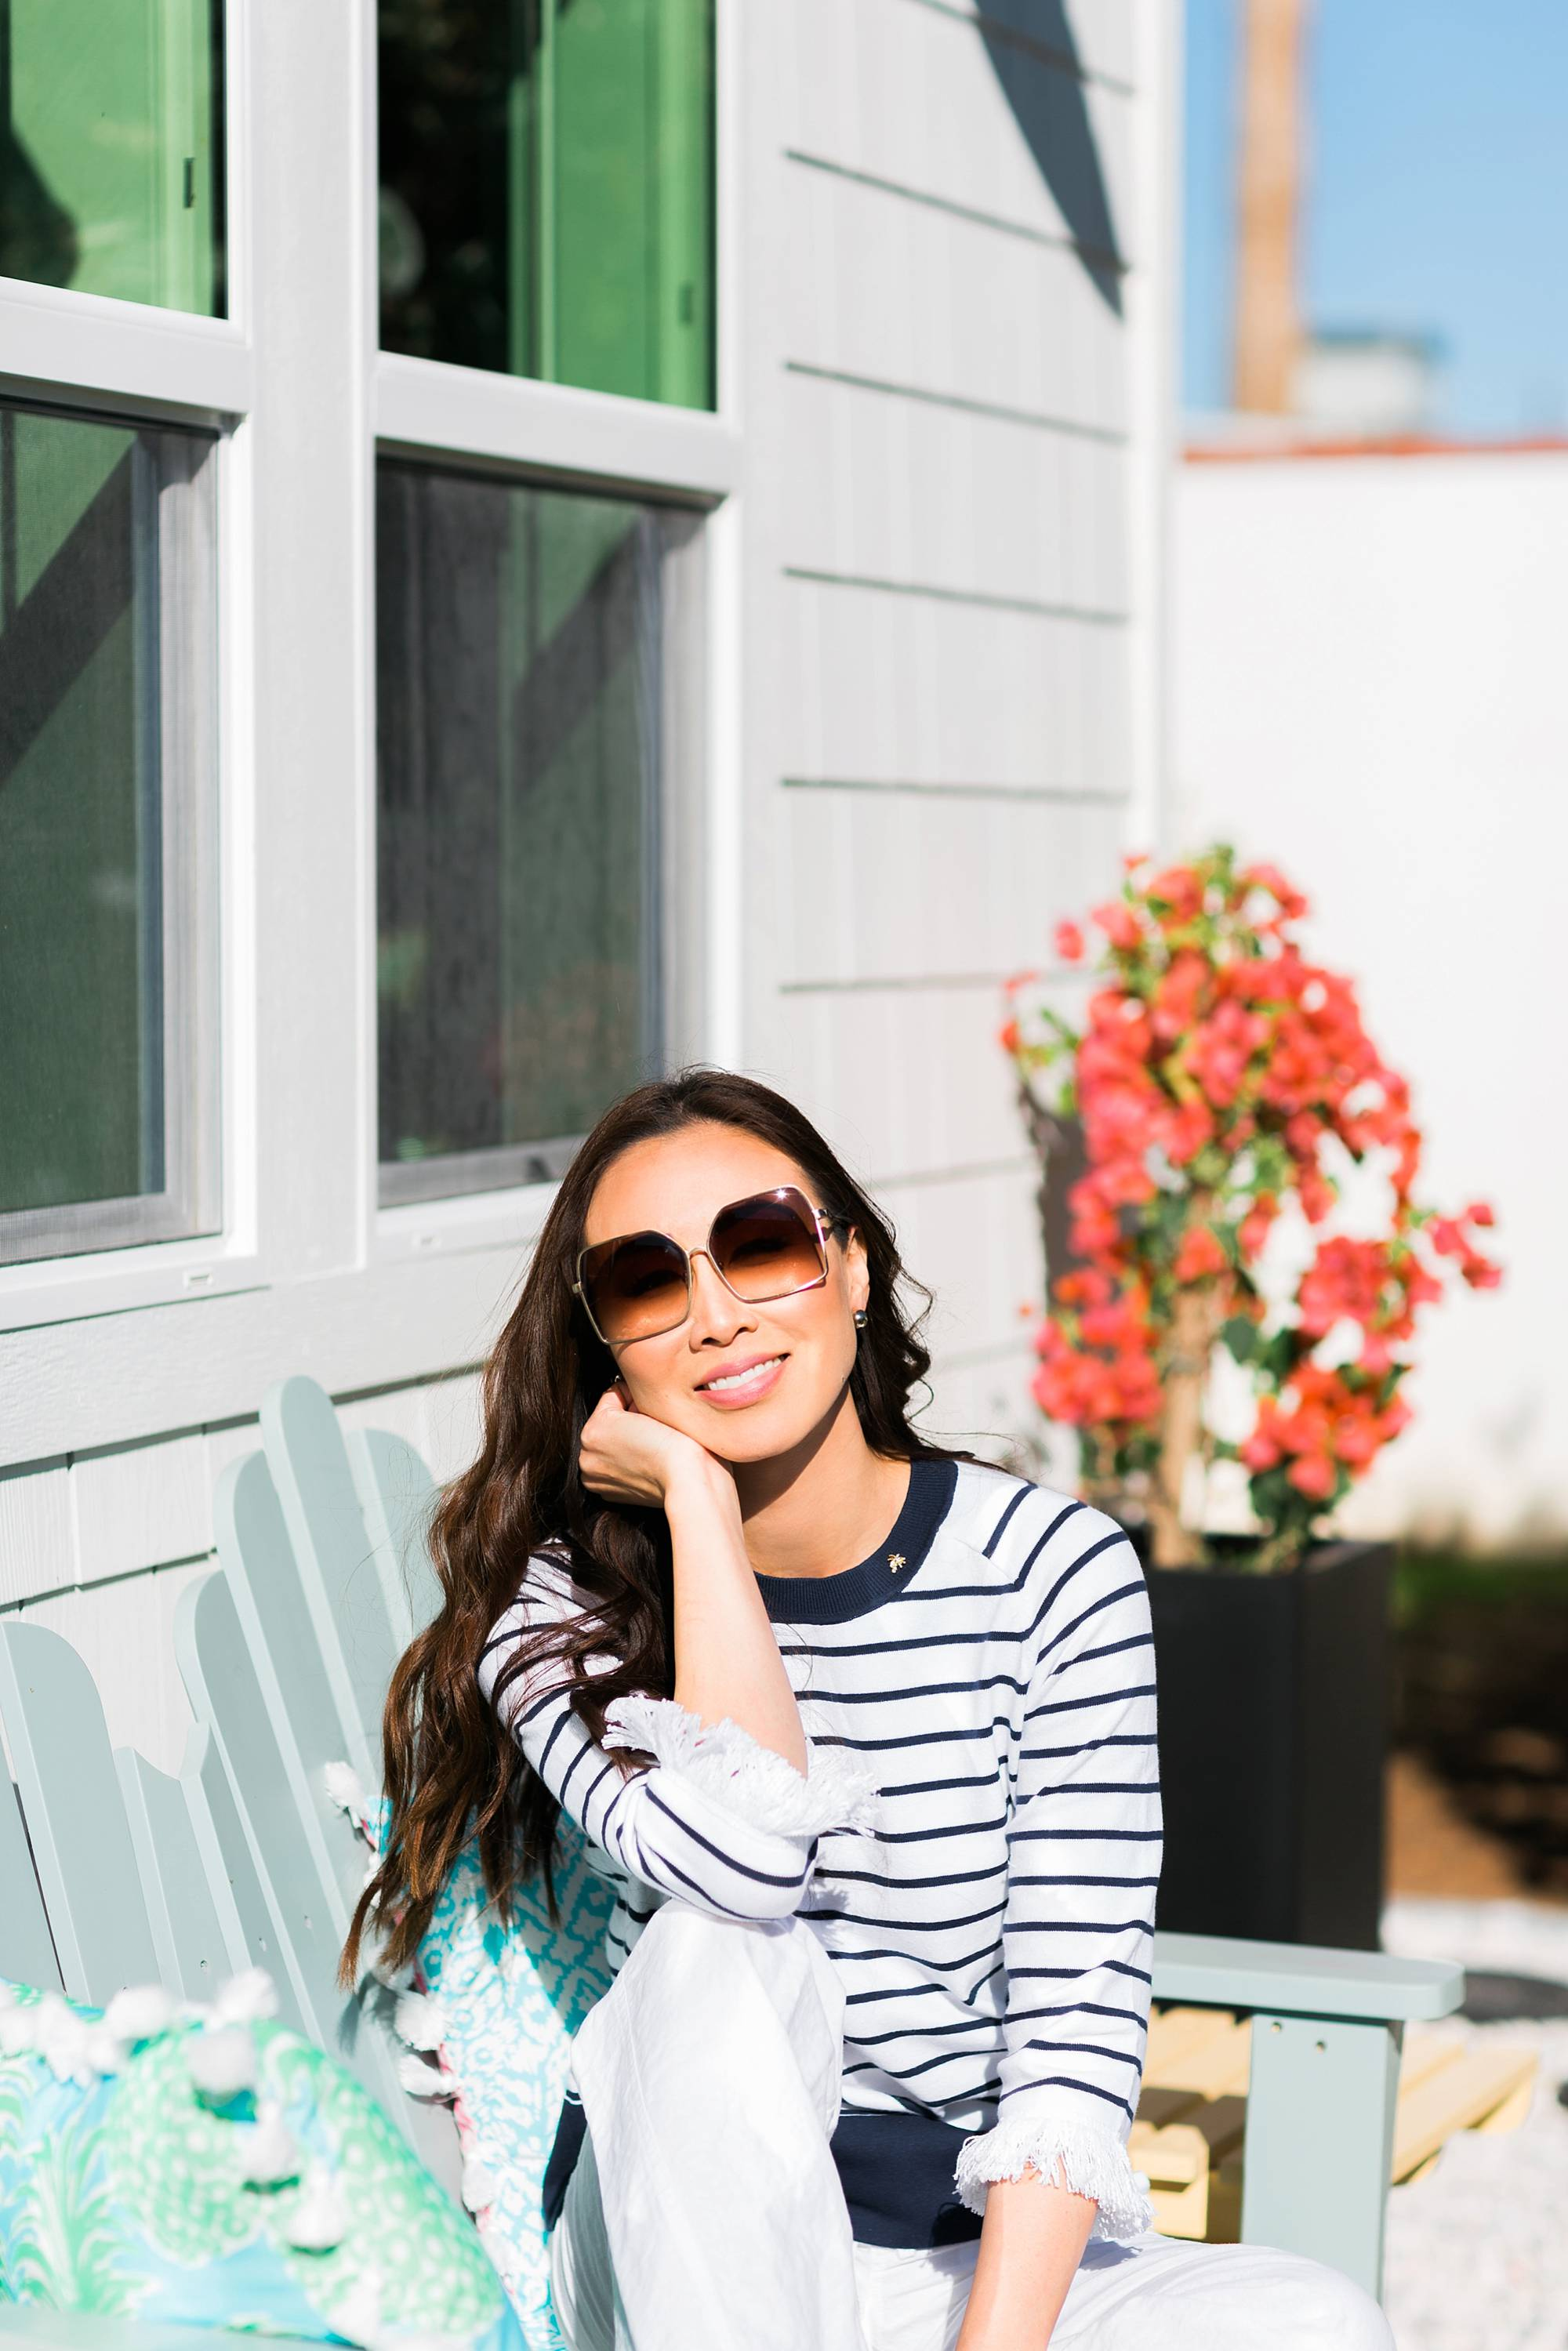 Lilly Pulitzer Dasha Sweater blue and white stripe with fringe on blogger Diana Elizabeth on bench